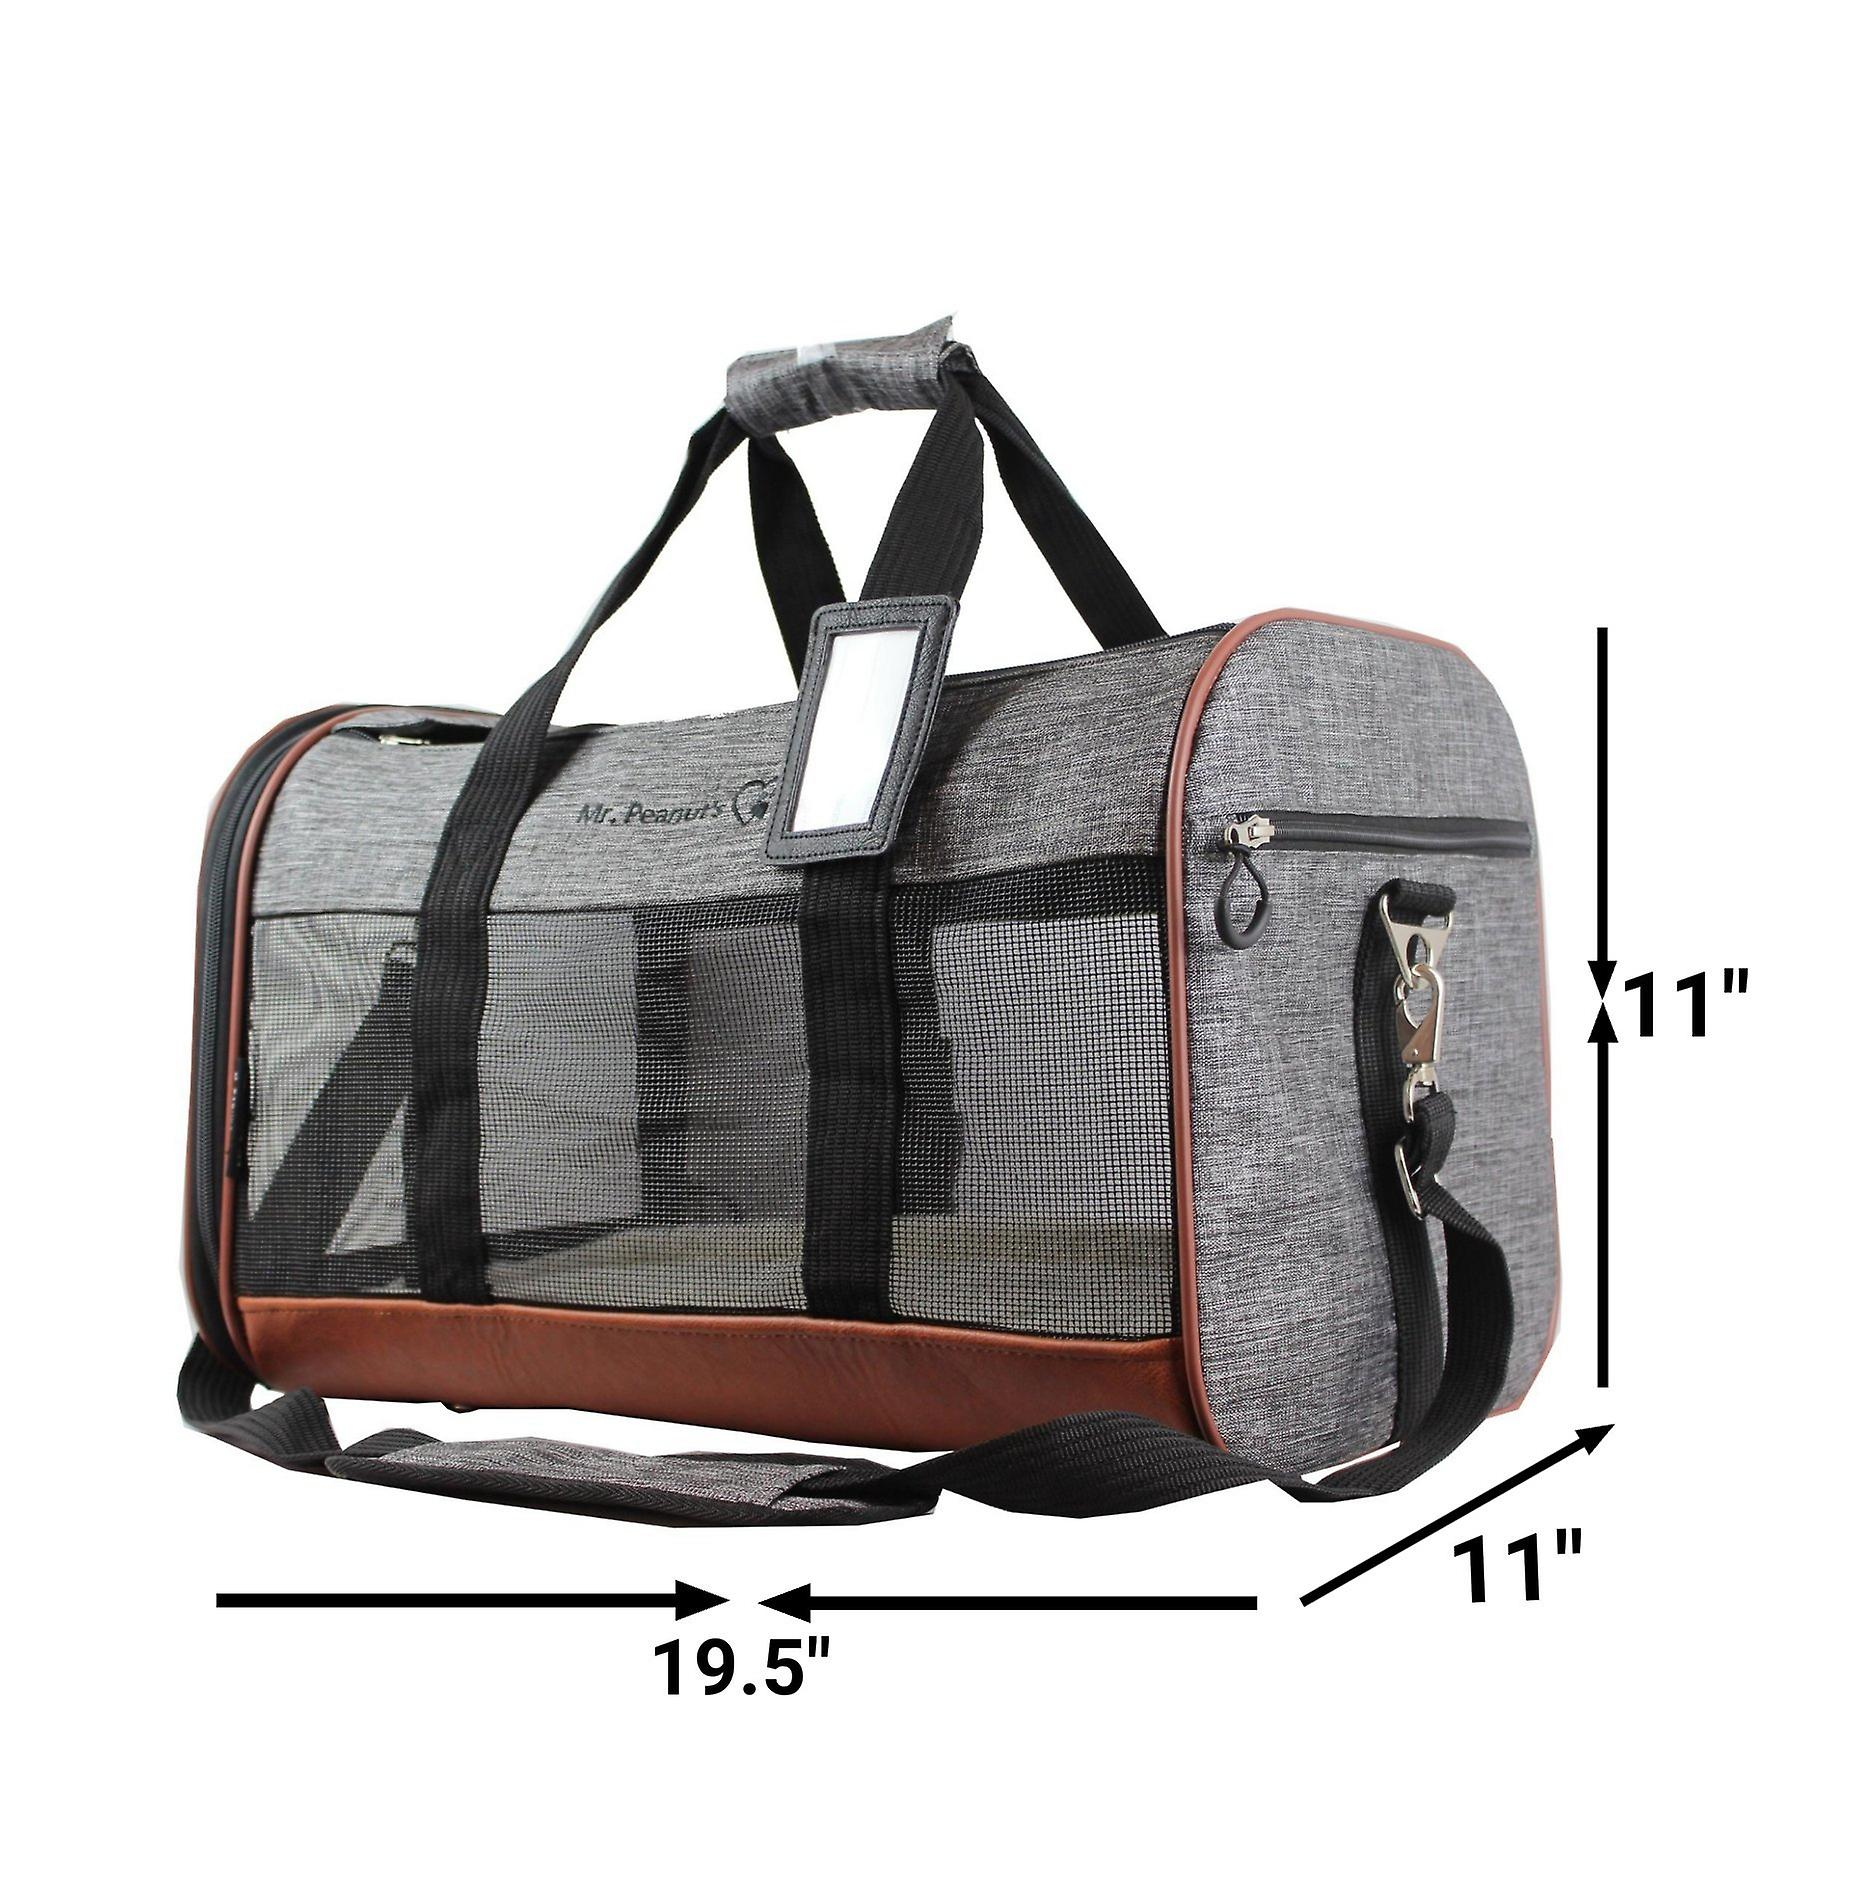 Rhodium series soft sided pet carrier - premium large size tote with self locking zippers and faux fleece pad over plywood base